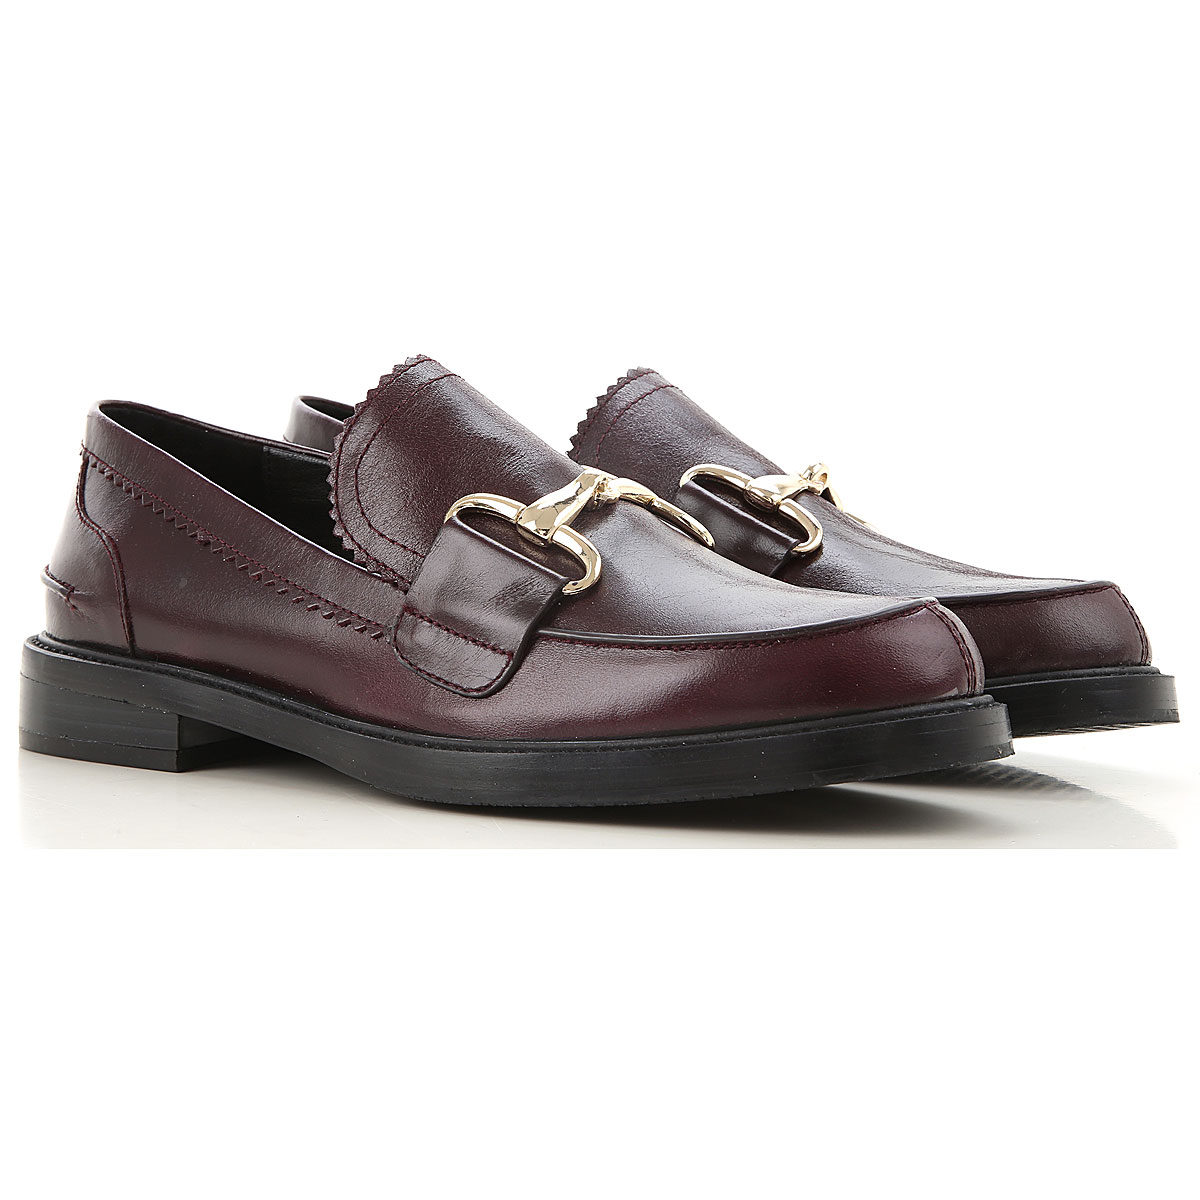 Elvio Zanon Loafers for Women On Sale, Prune, Leather, 2019, 10 11 9